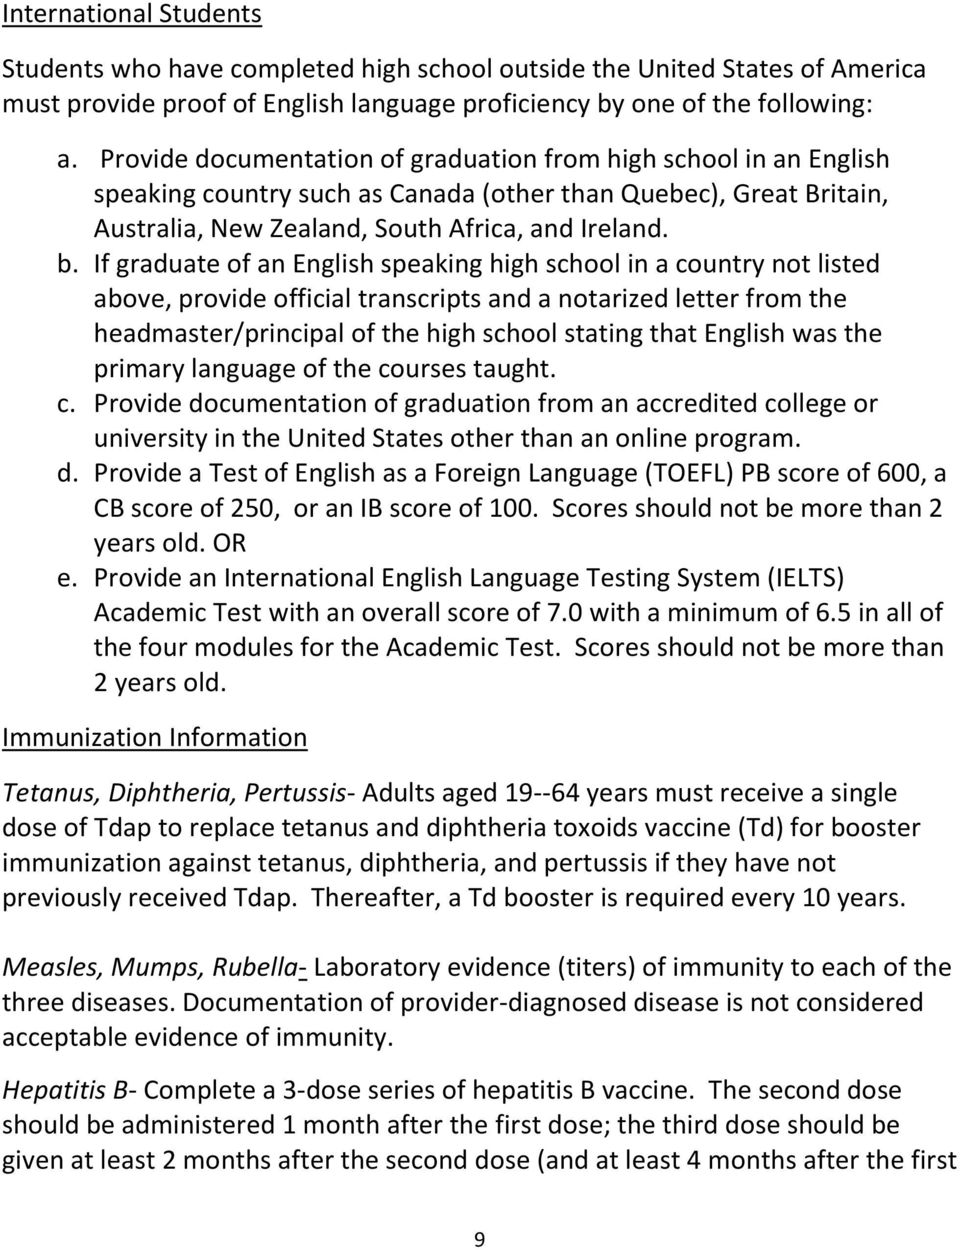 If graduate of an English speaking high school in a country not listed above, provide official transcripts and a notarized letter from the headmaster/principal of the high school stating that English